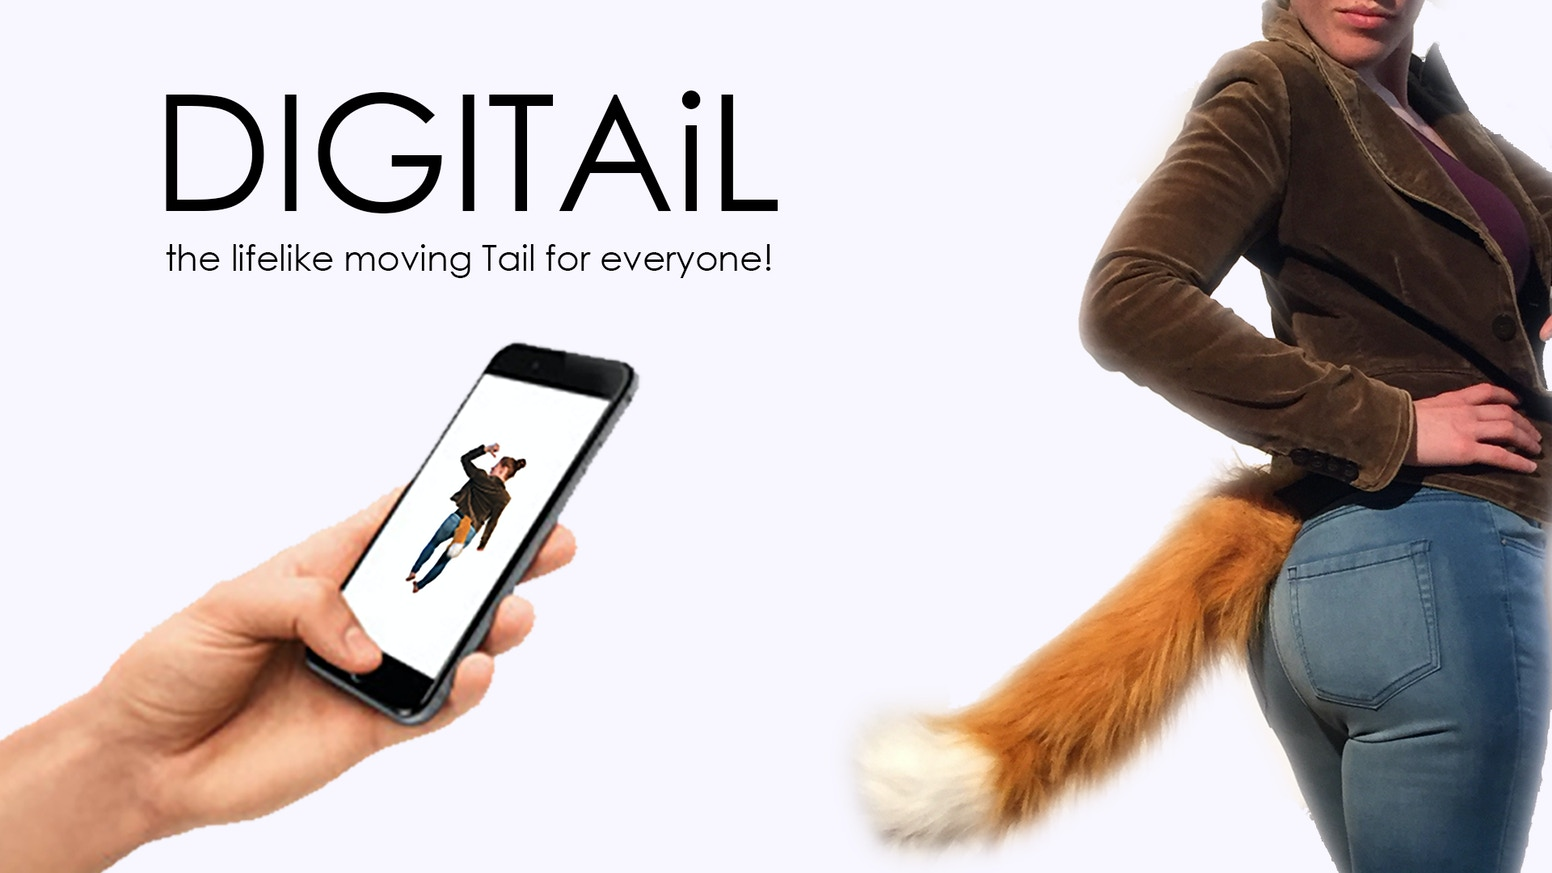 We make lifelike animatronic Tails. Introducing the DIGITAiL! App controlled, for Android and iPhone, customised for you for free!